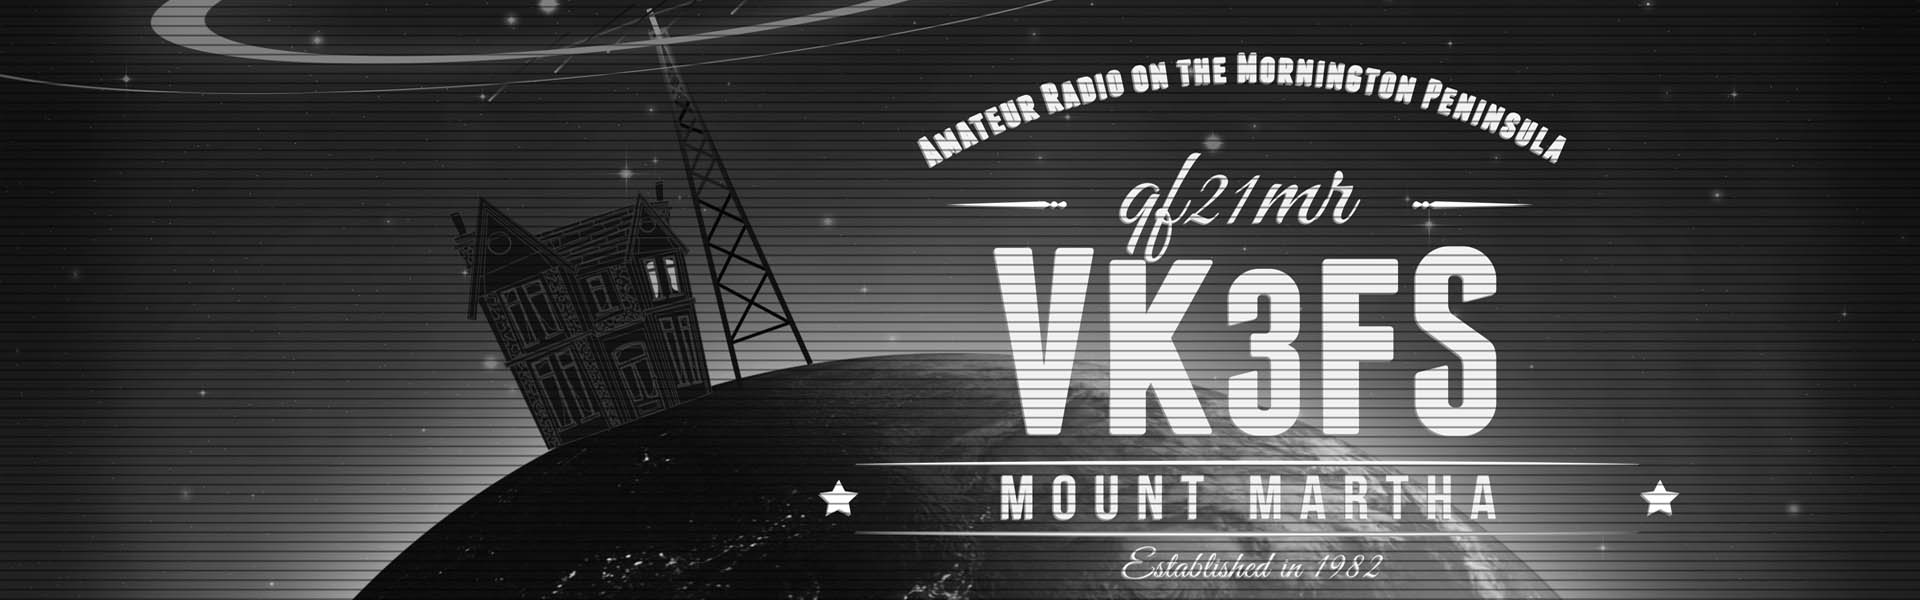 VK3FS Mount Martha